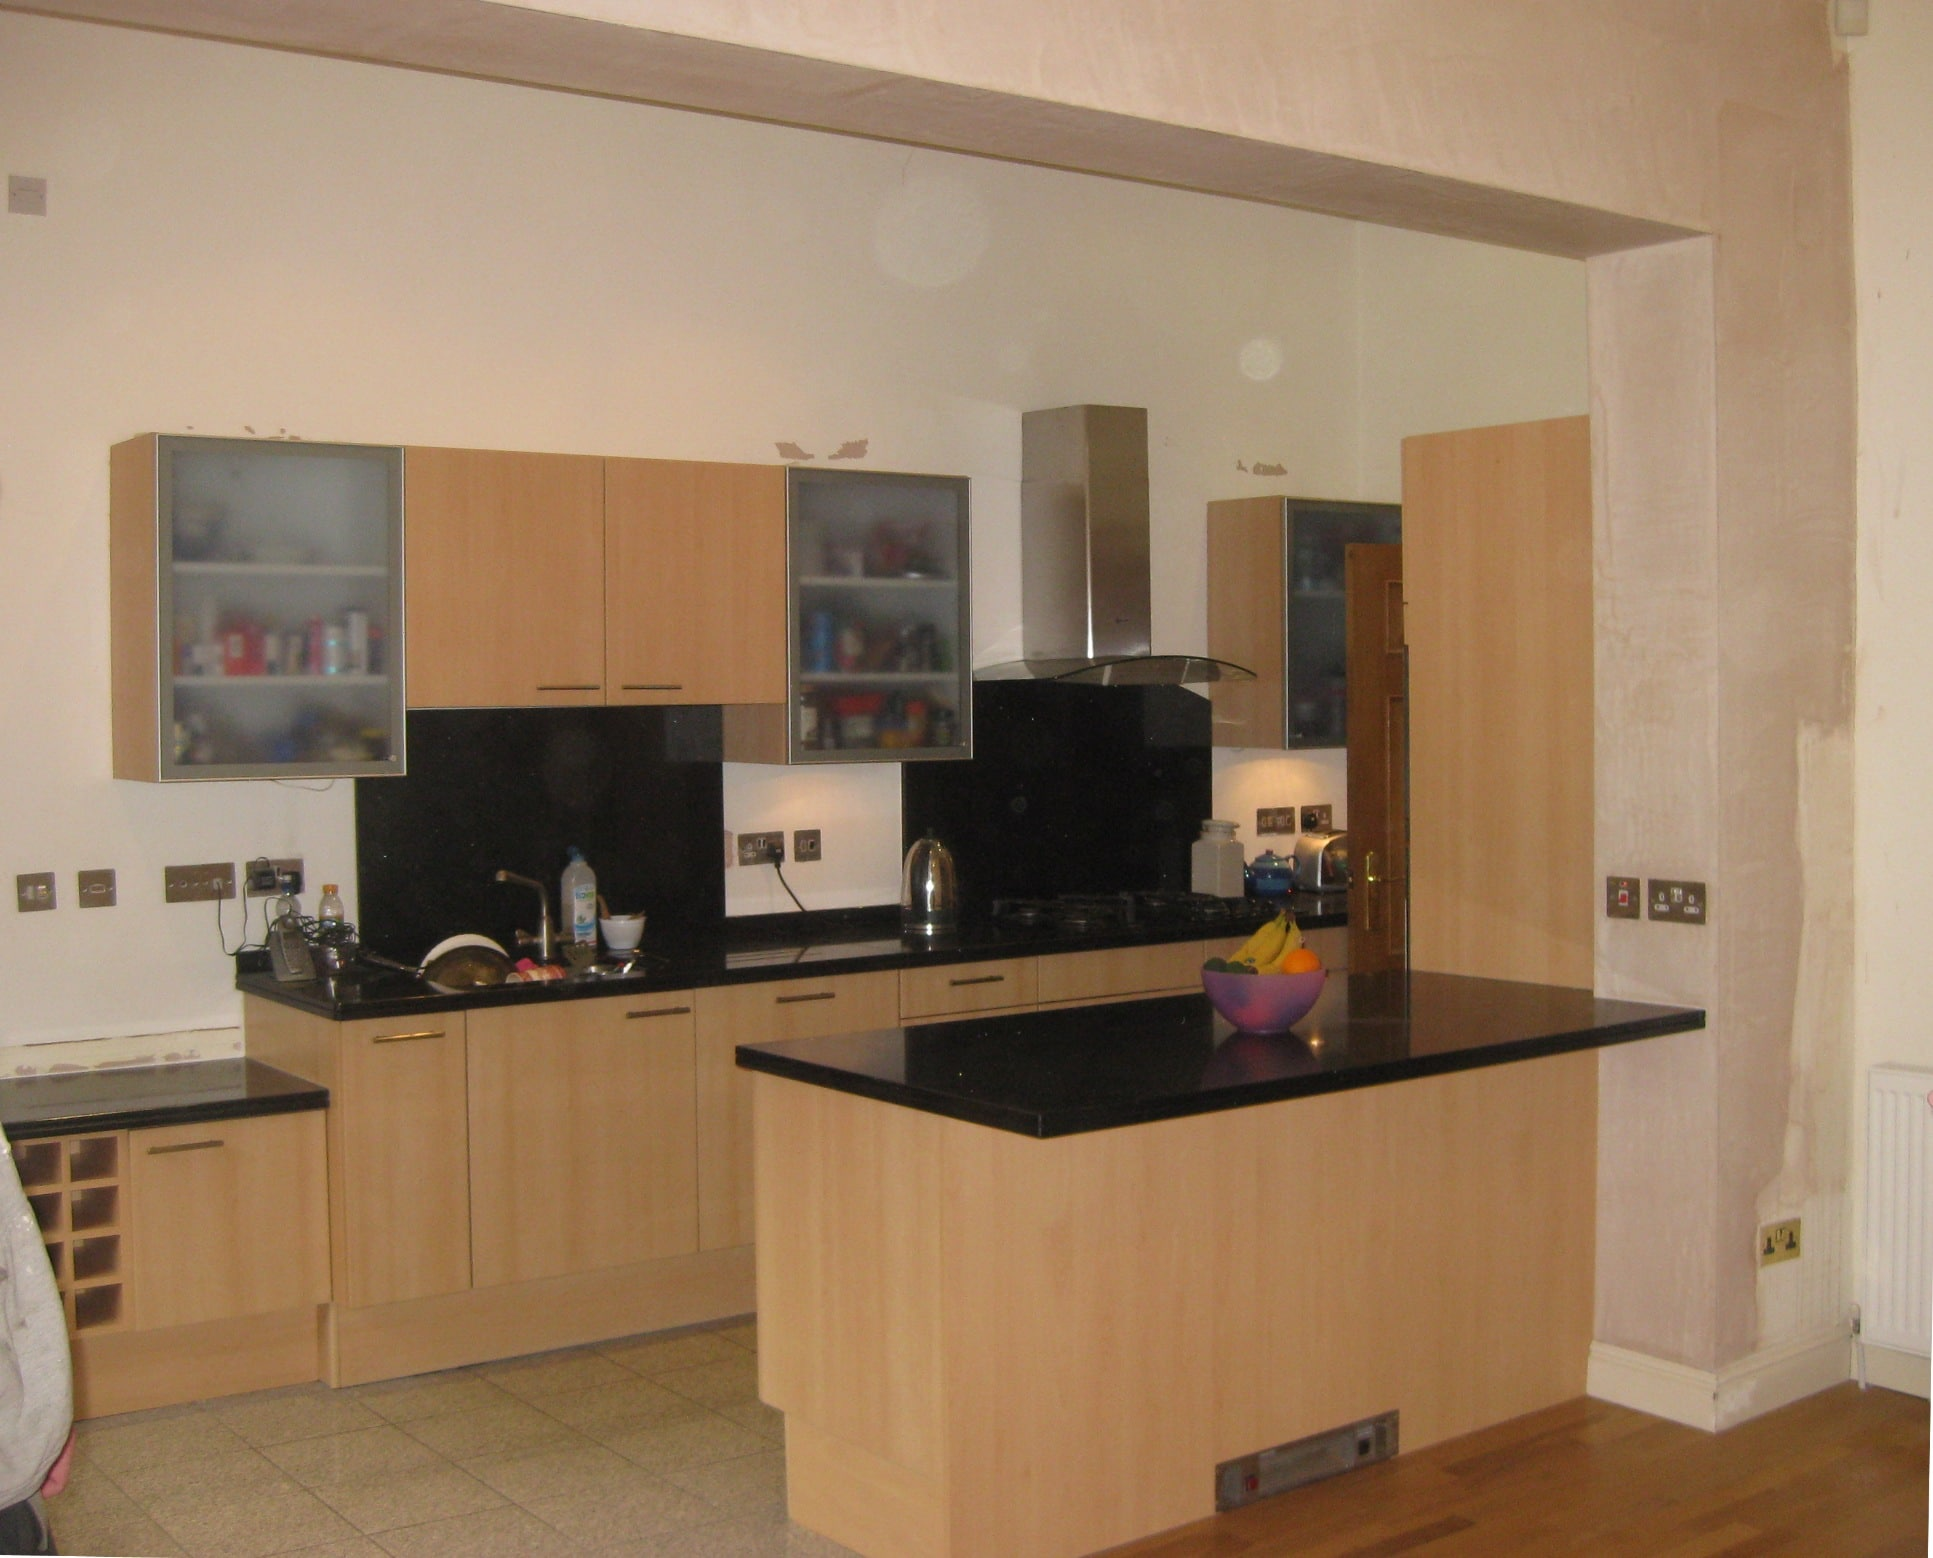 Kitchen Alterations To Form Open Plan Kitchen To Living